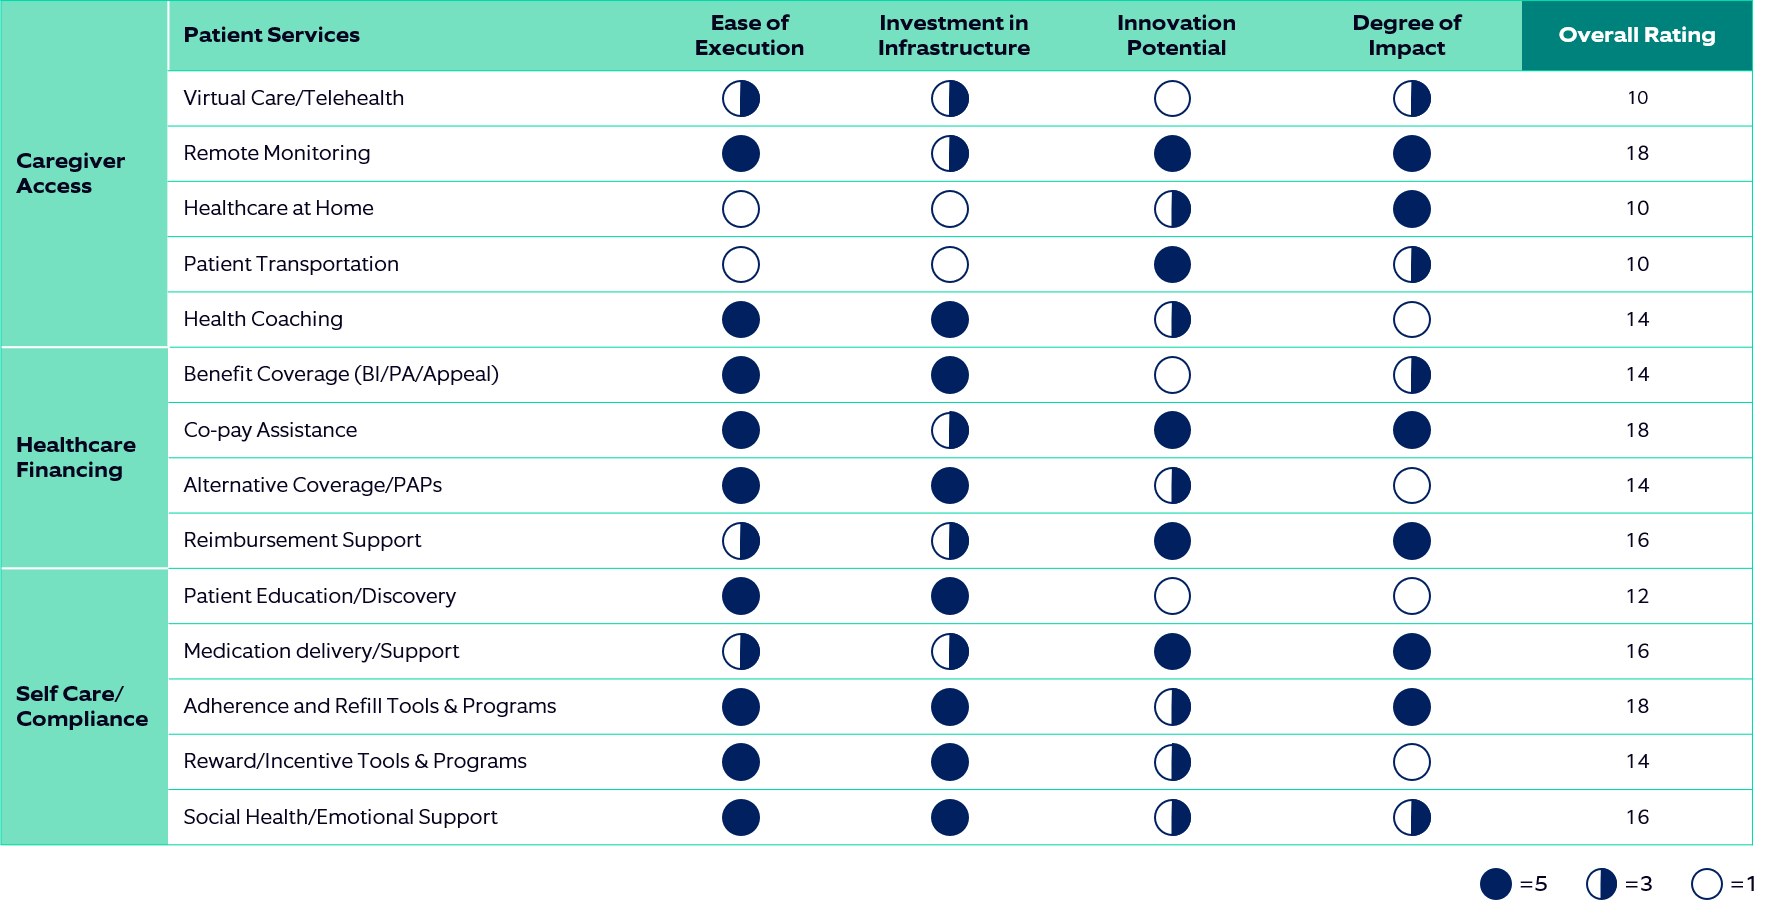 Table showing rating patient service portfolios across four parameters: ease of execution, investment in infrastructure, innovation potential, and degree of impact